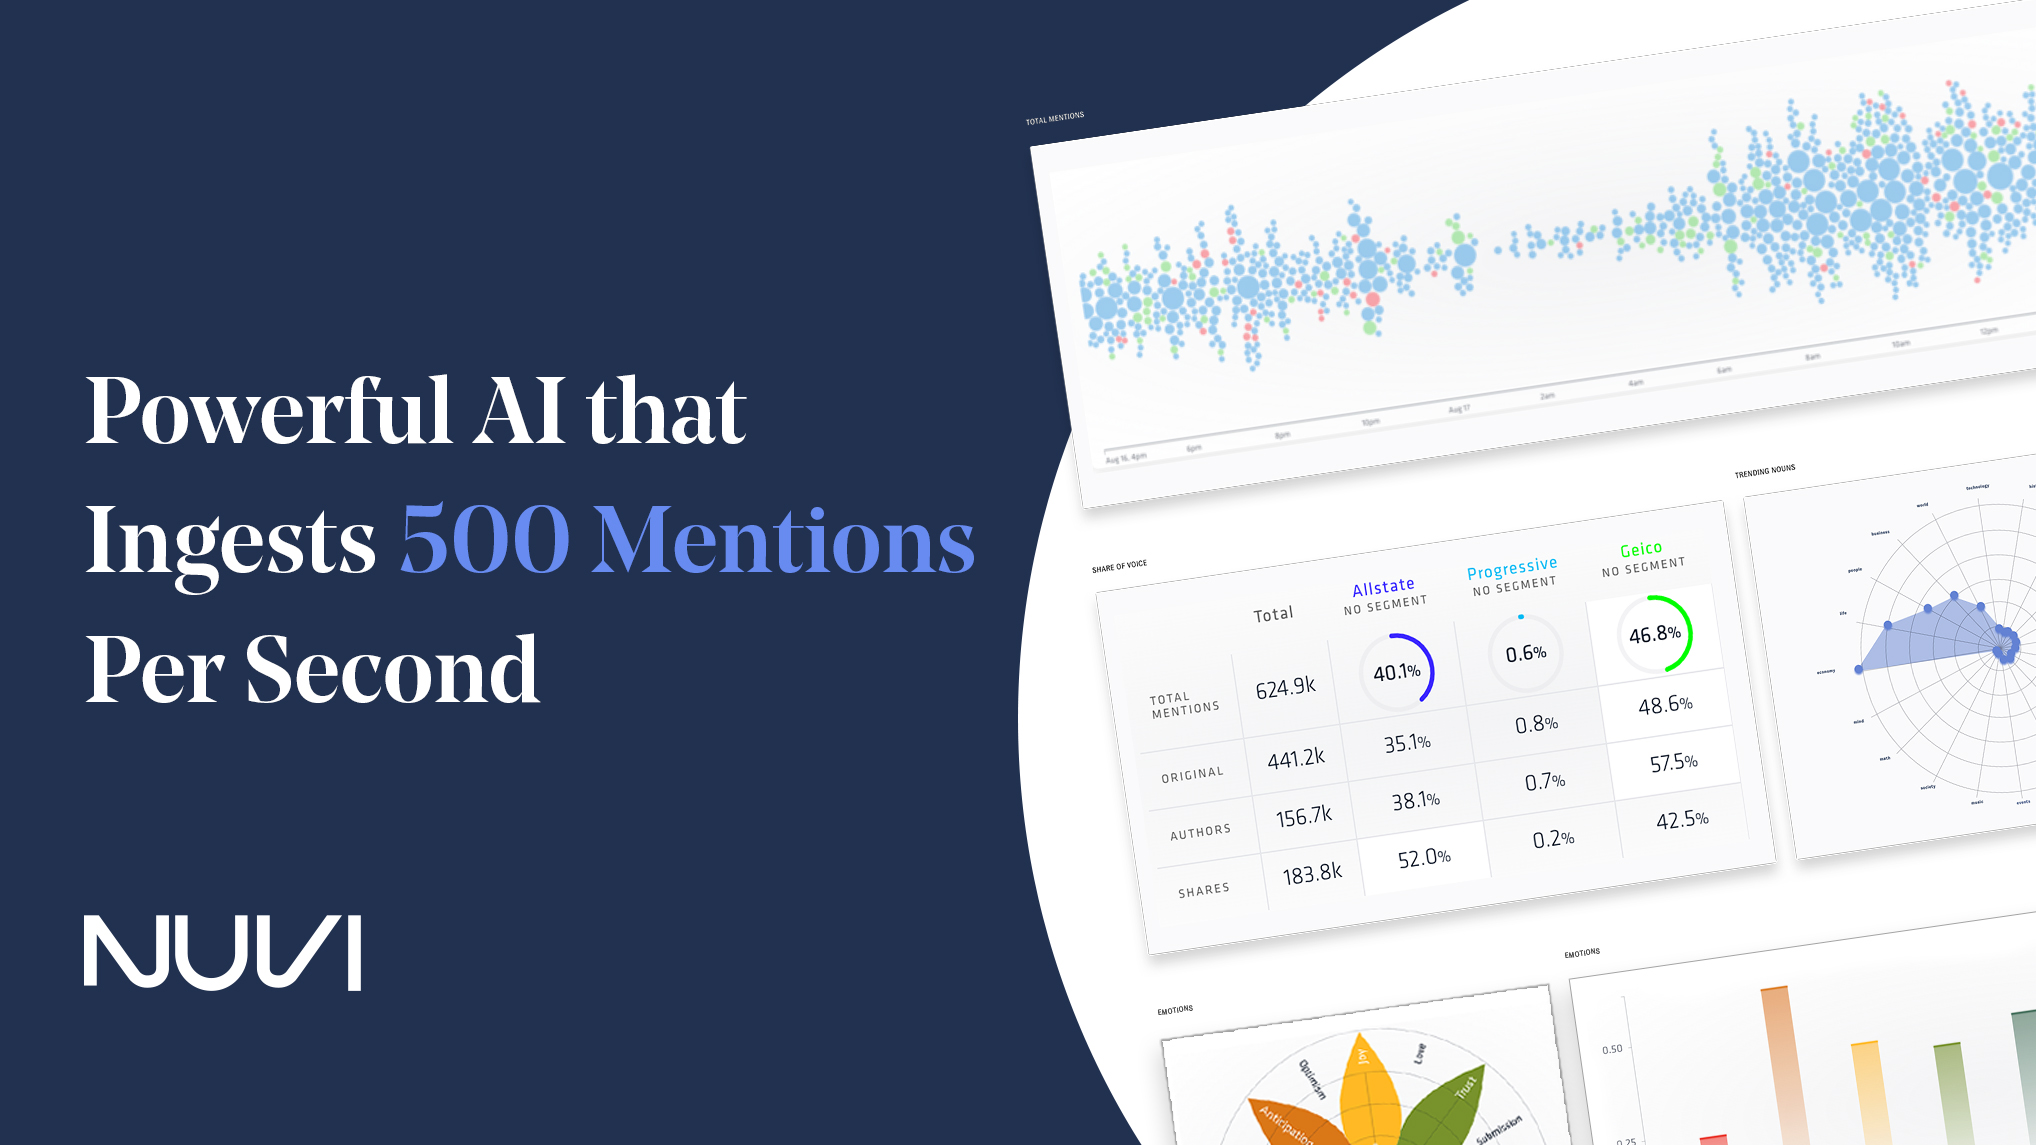 The Nuvi Language Engine is a powerful AI that ingests 500 mentions per second. It's speed and accuracy boosts social analytics and customer experience management.